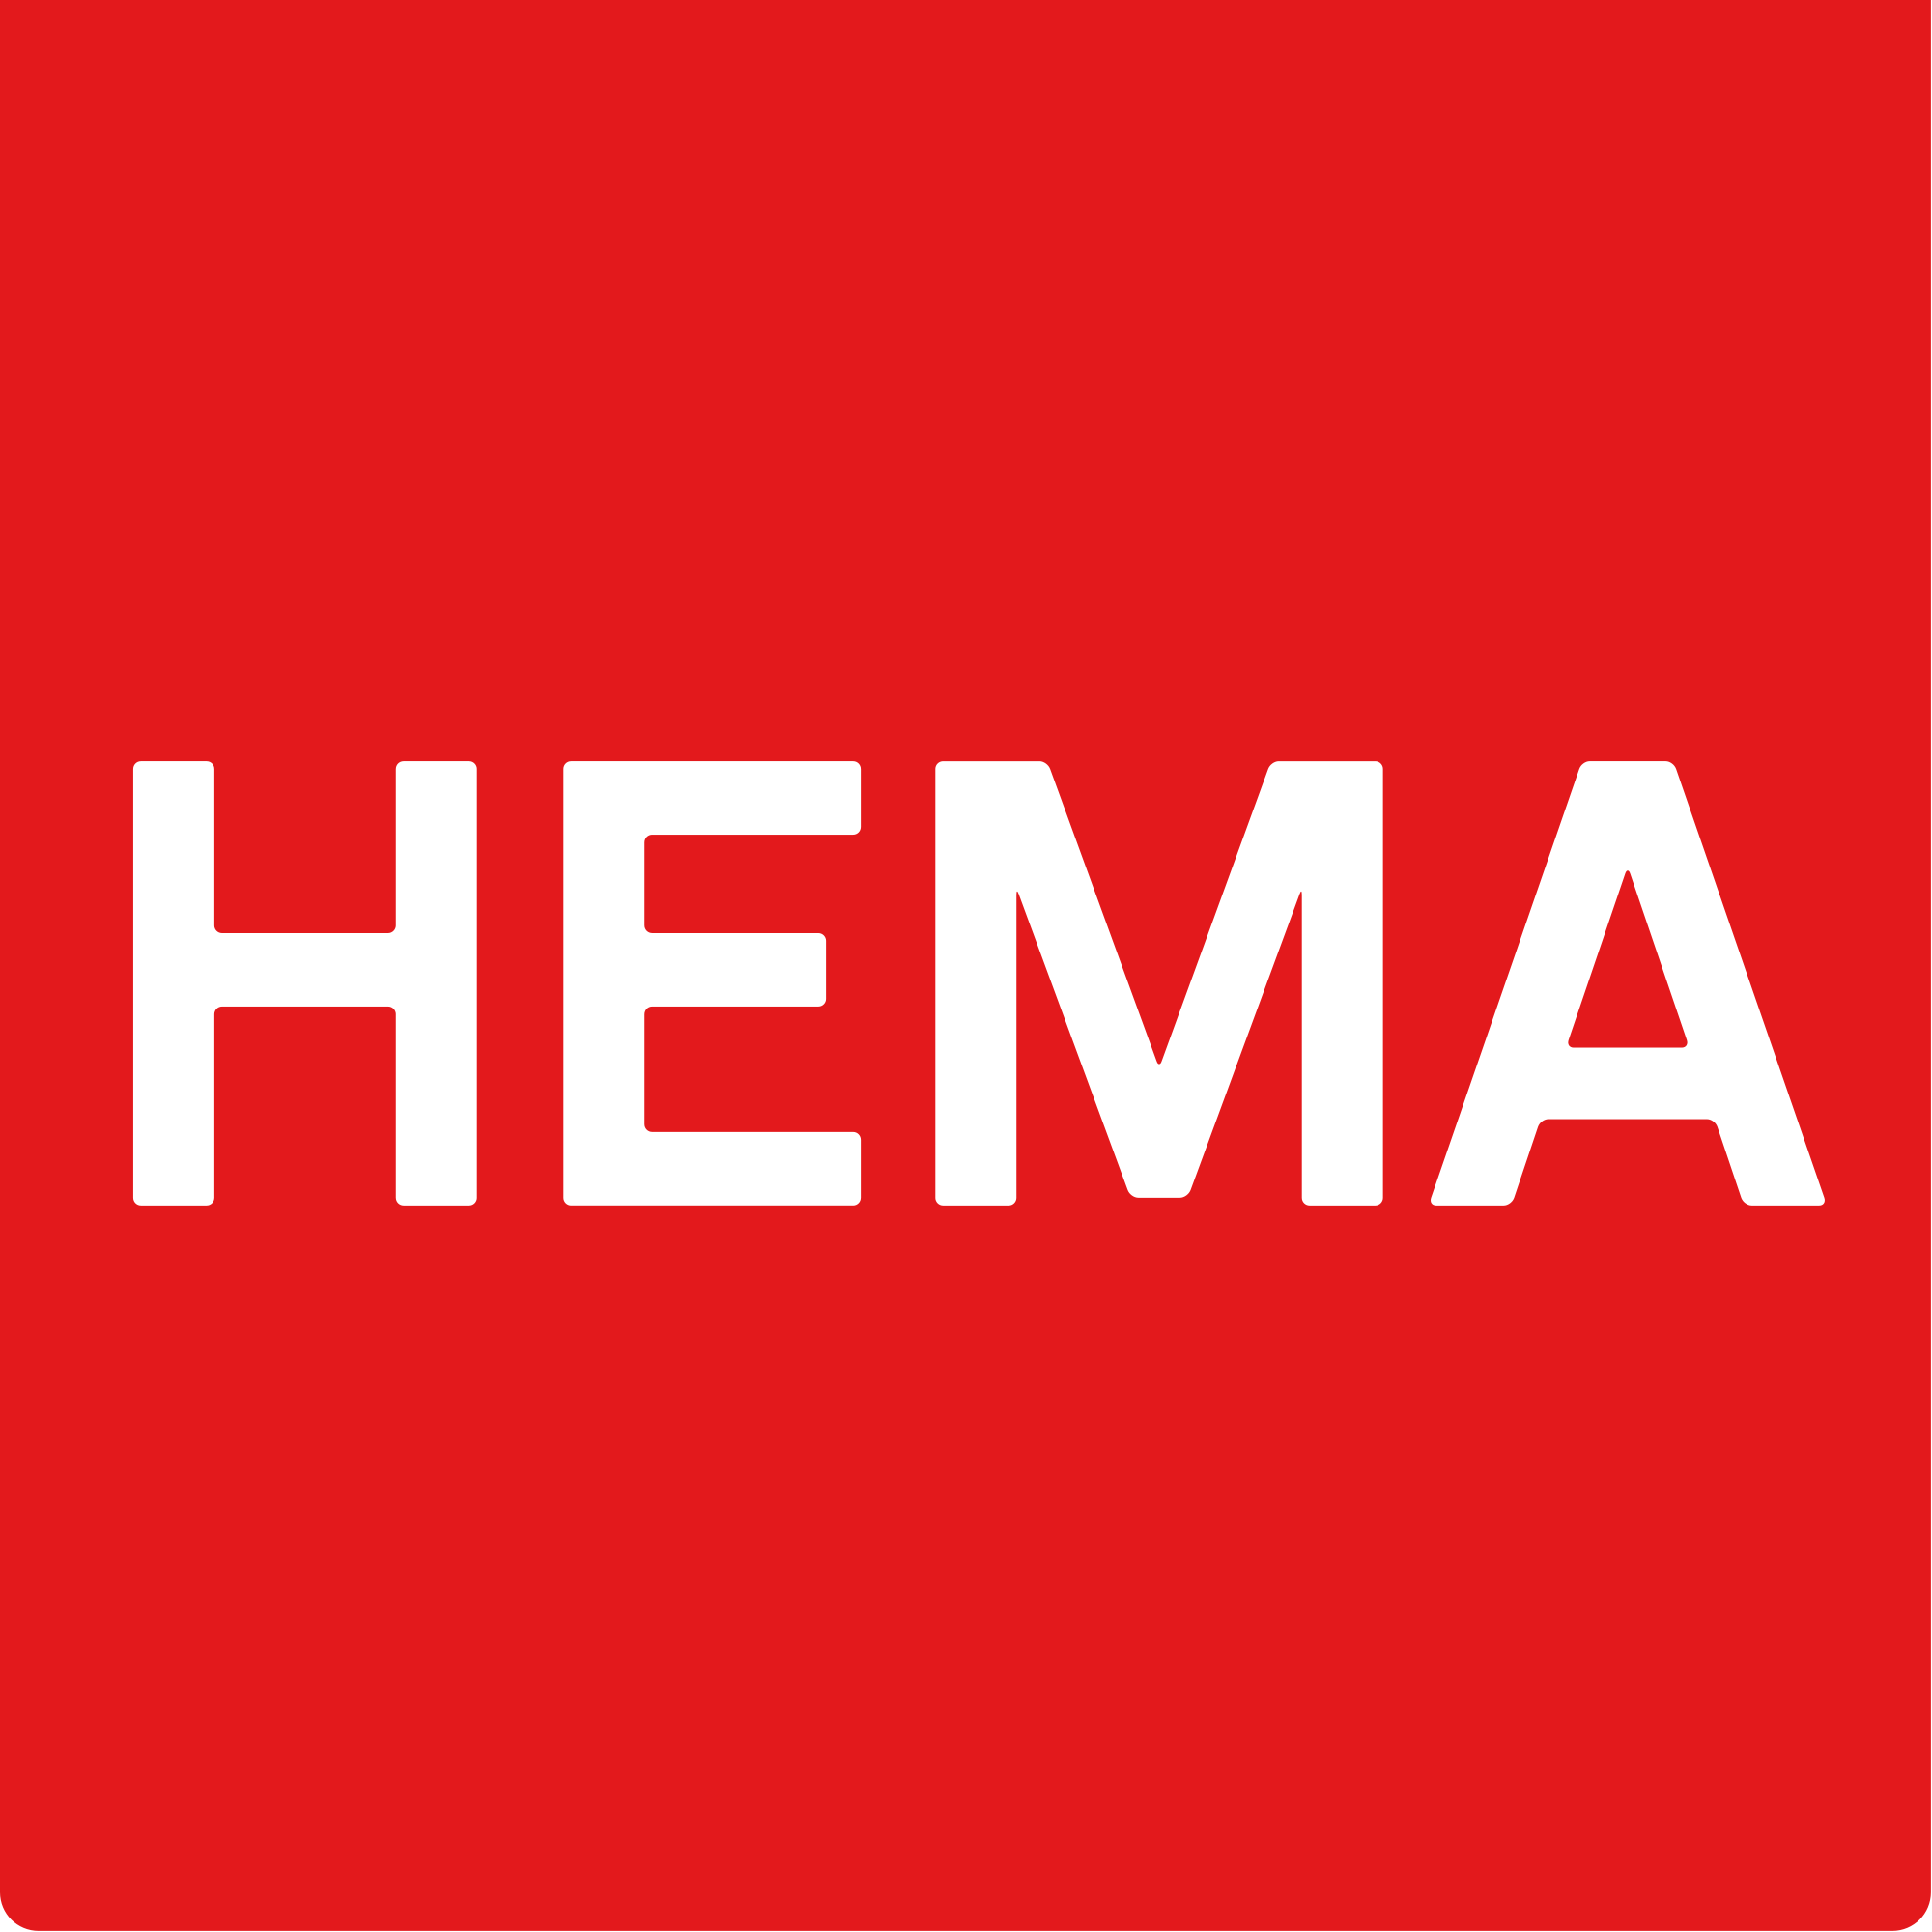 HEMA reviews| Lees klantreviews over www.hema.nl | 17 van 30